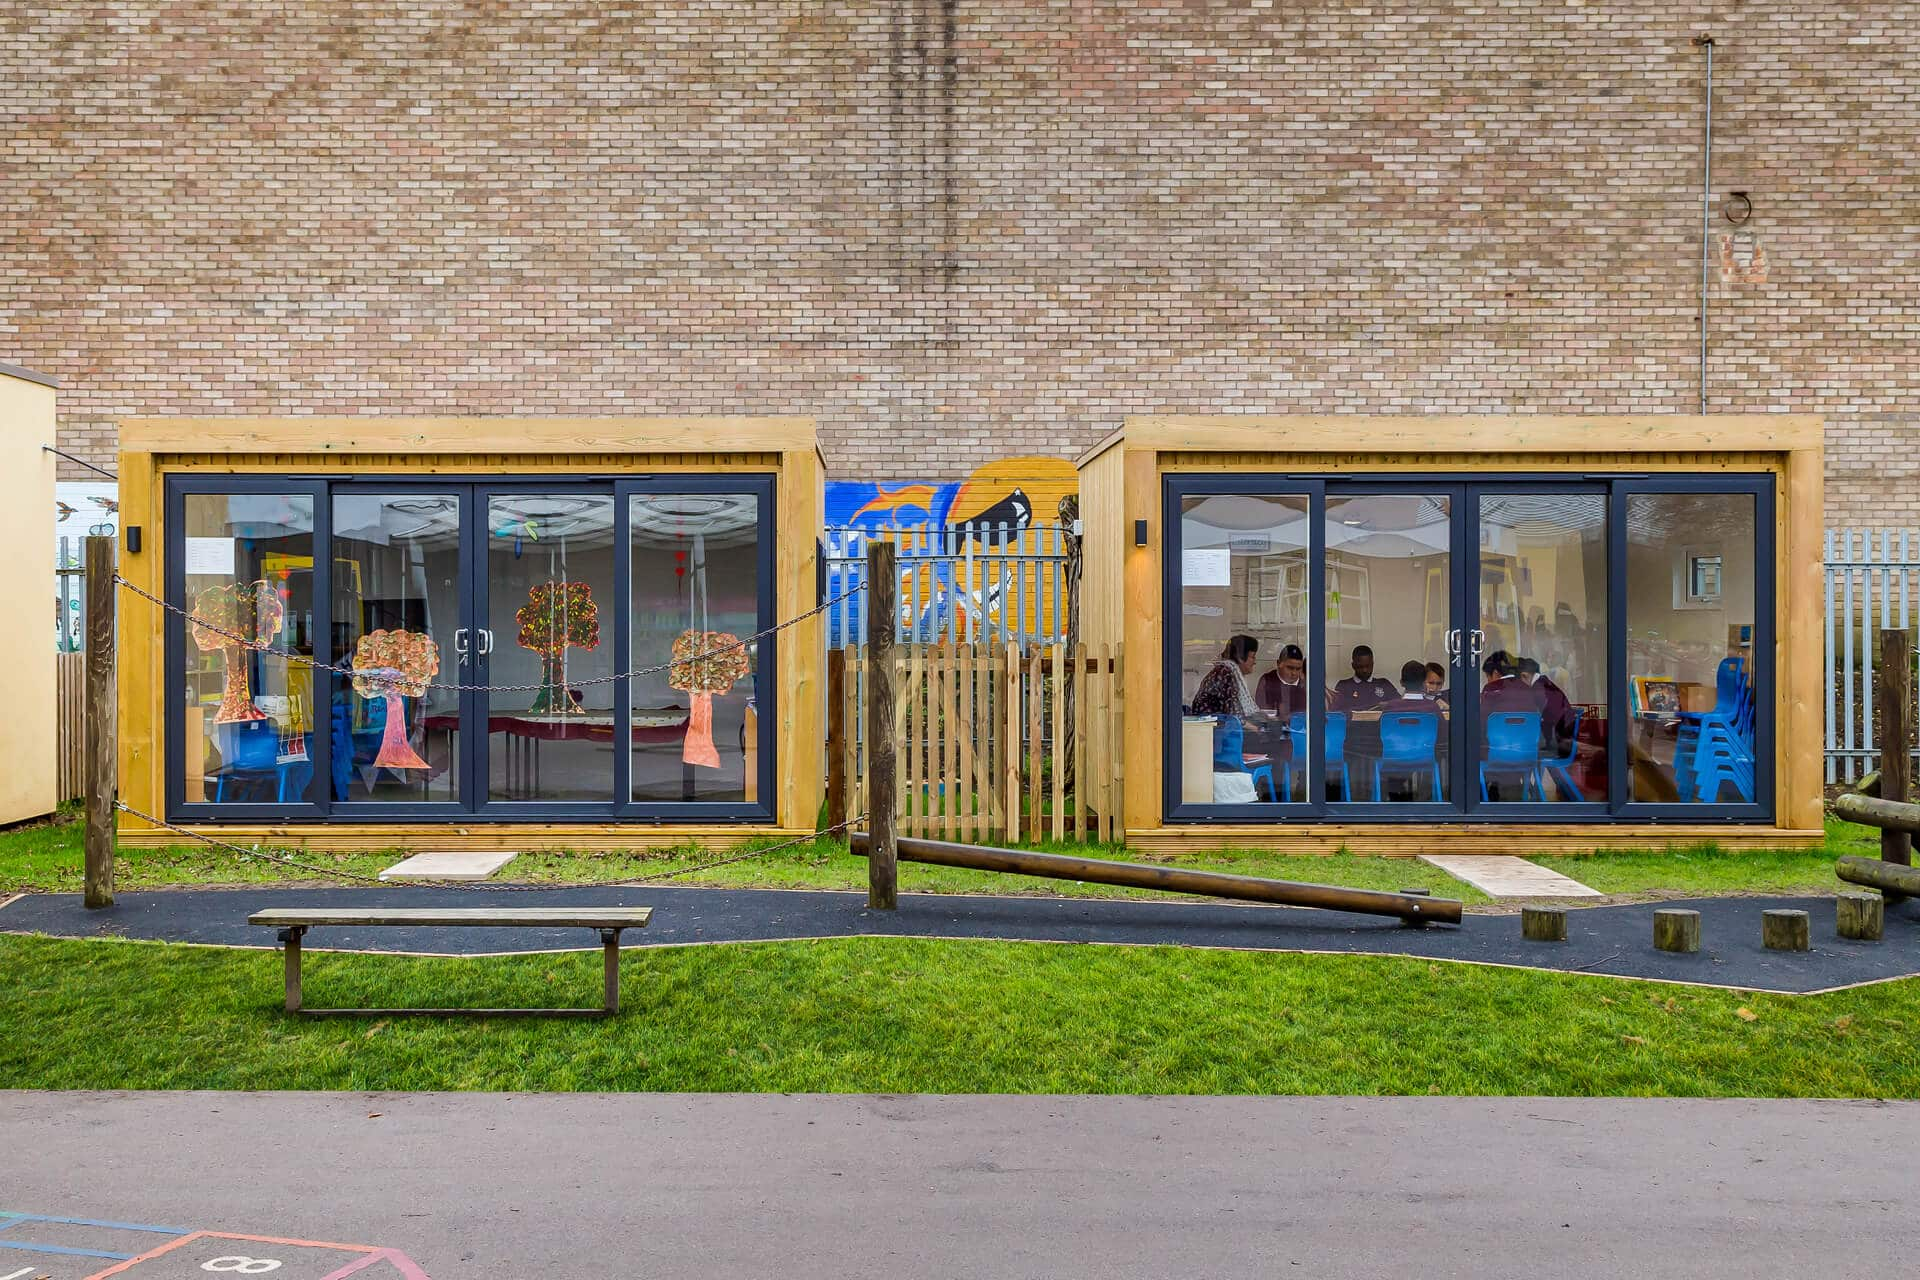 Two outdoor classroom garden rooms with small group of children sat on blue chairs in right building. Playground equipment in the foreground.